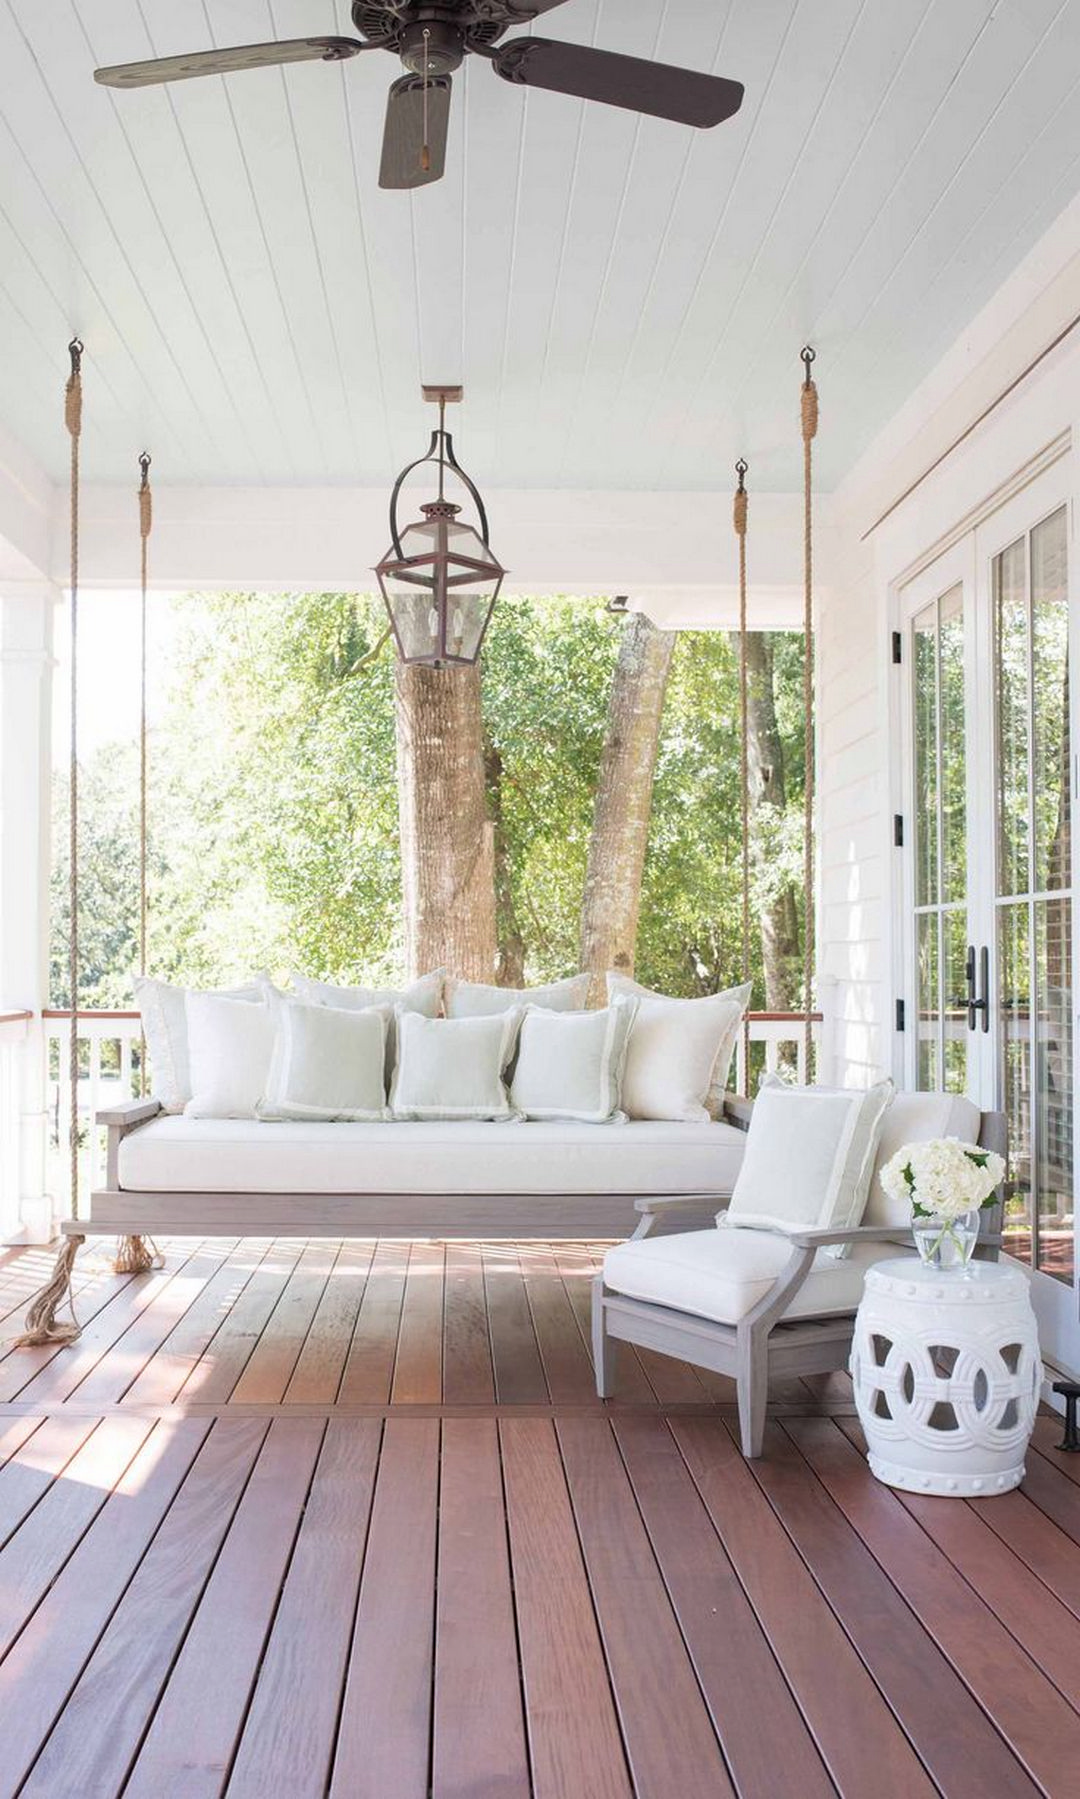 4 Installation Tips To Get A Super Comfy Porch Swing In